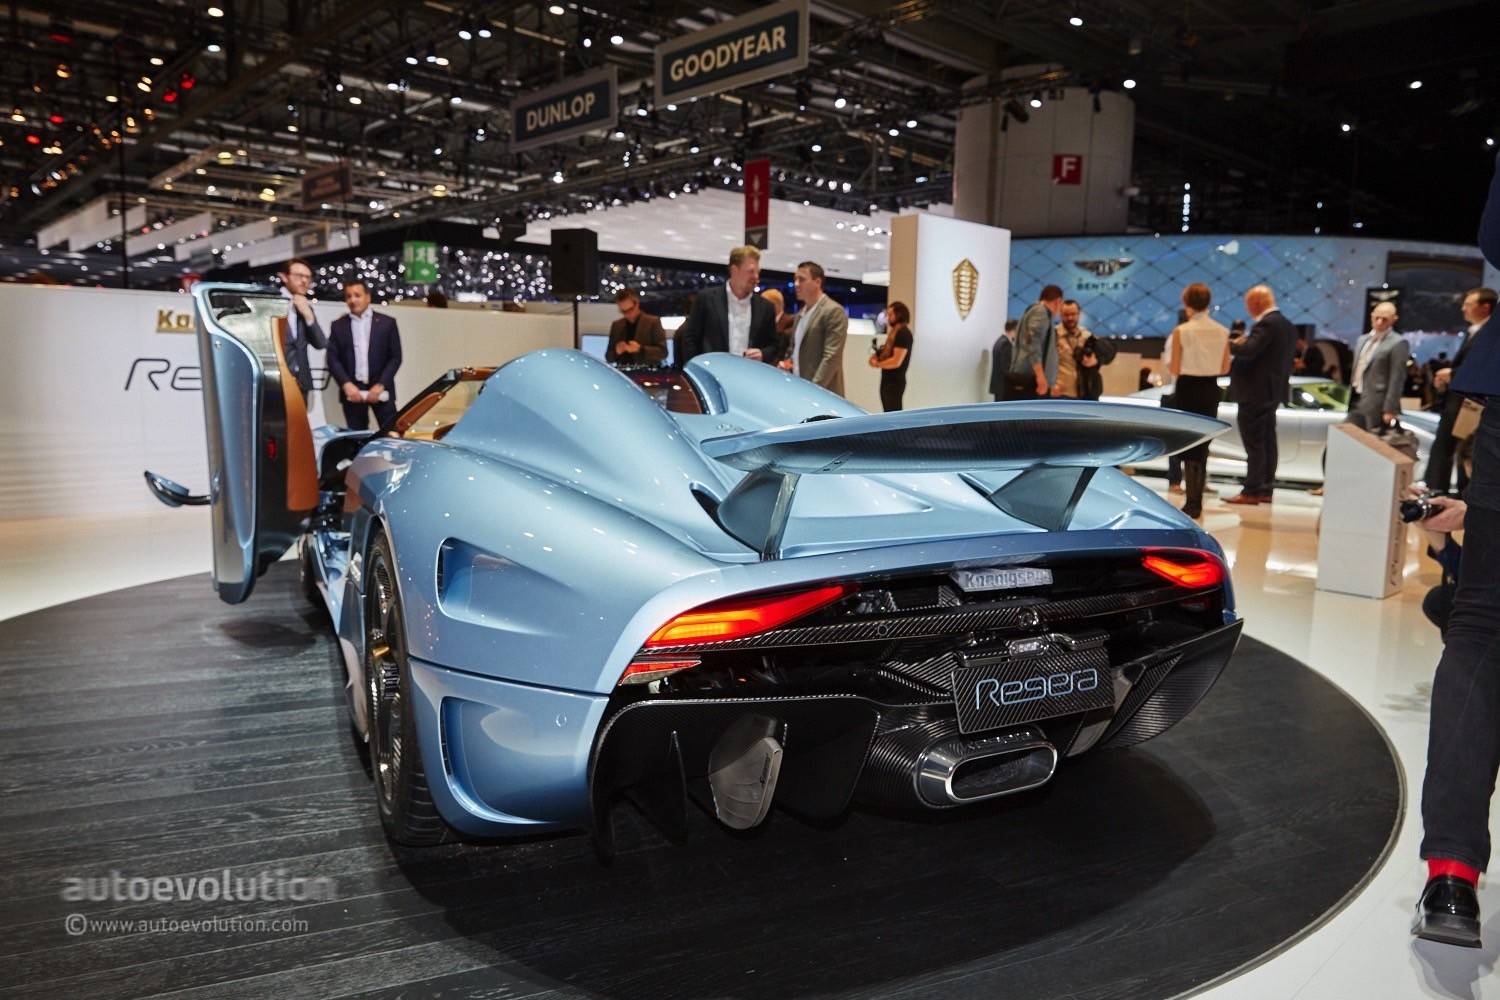 Koenigsegg S Regera Is A Crazy 1 500 Bhp Hybrid With No